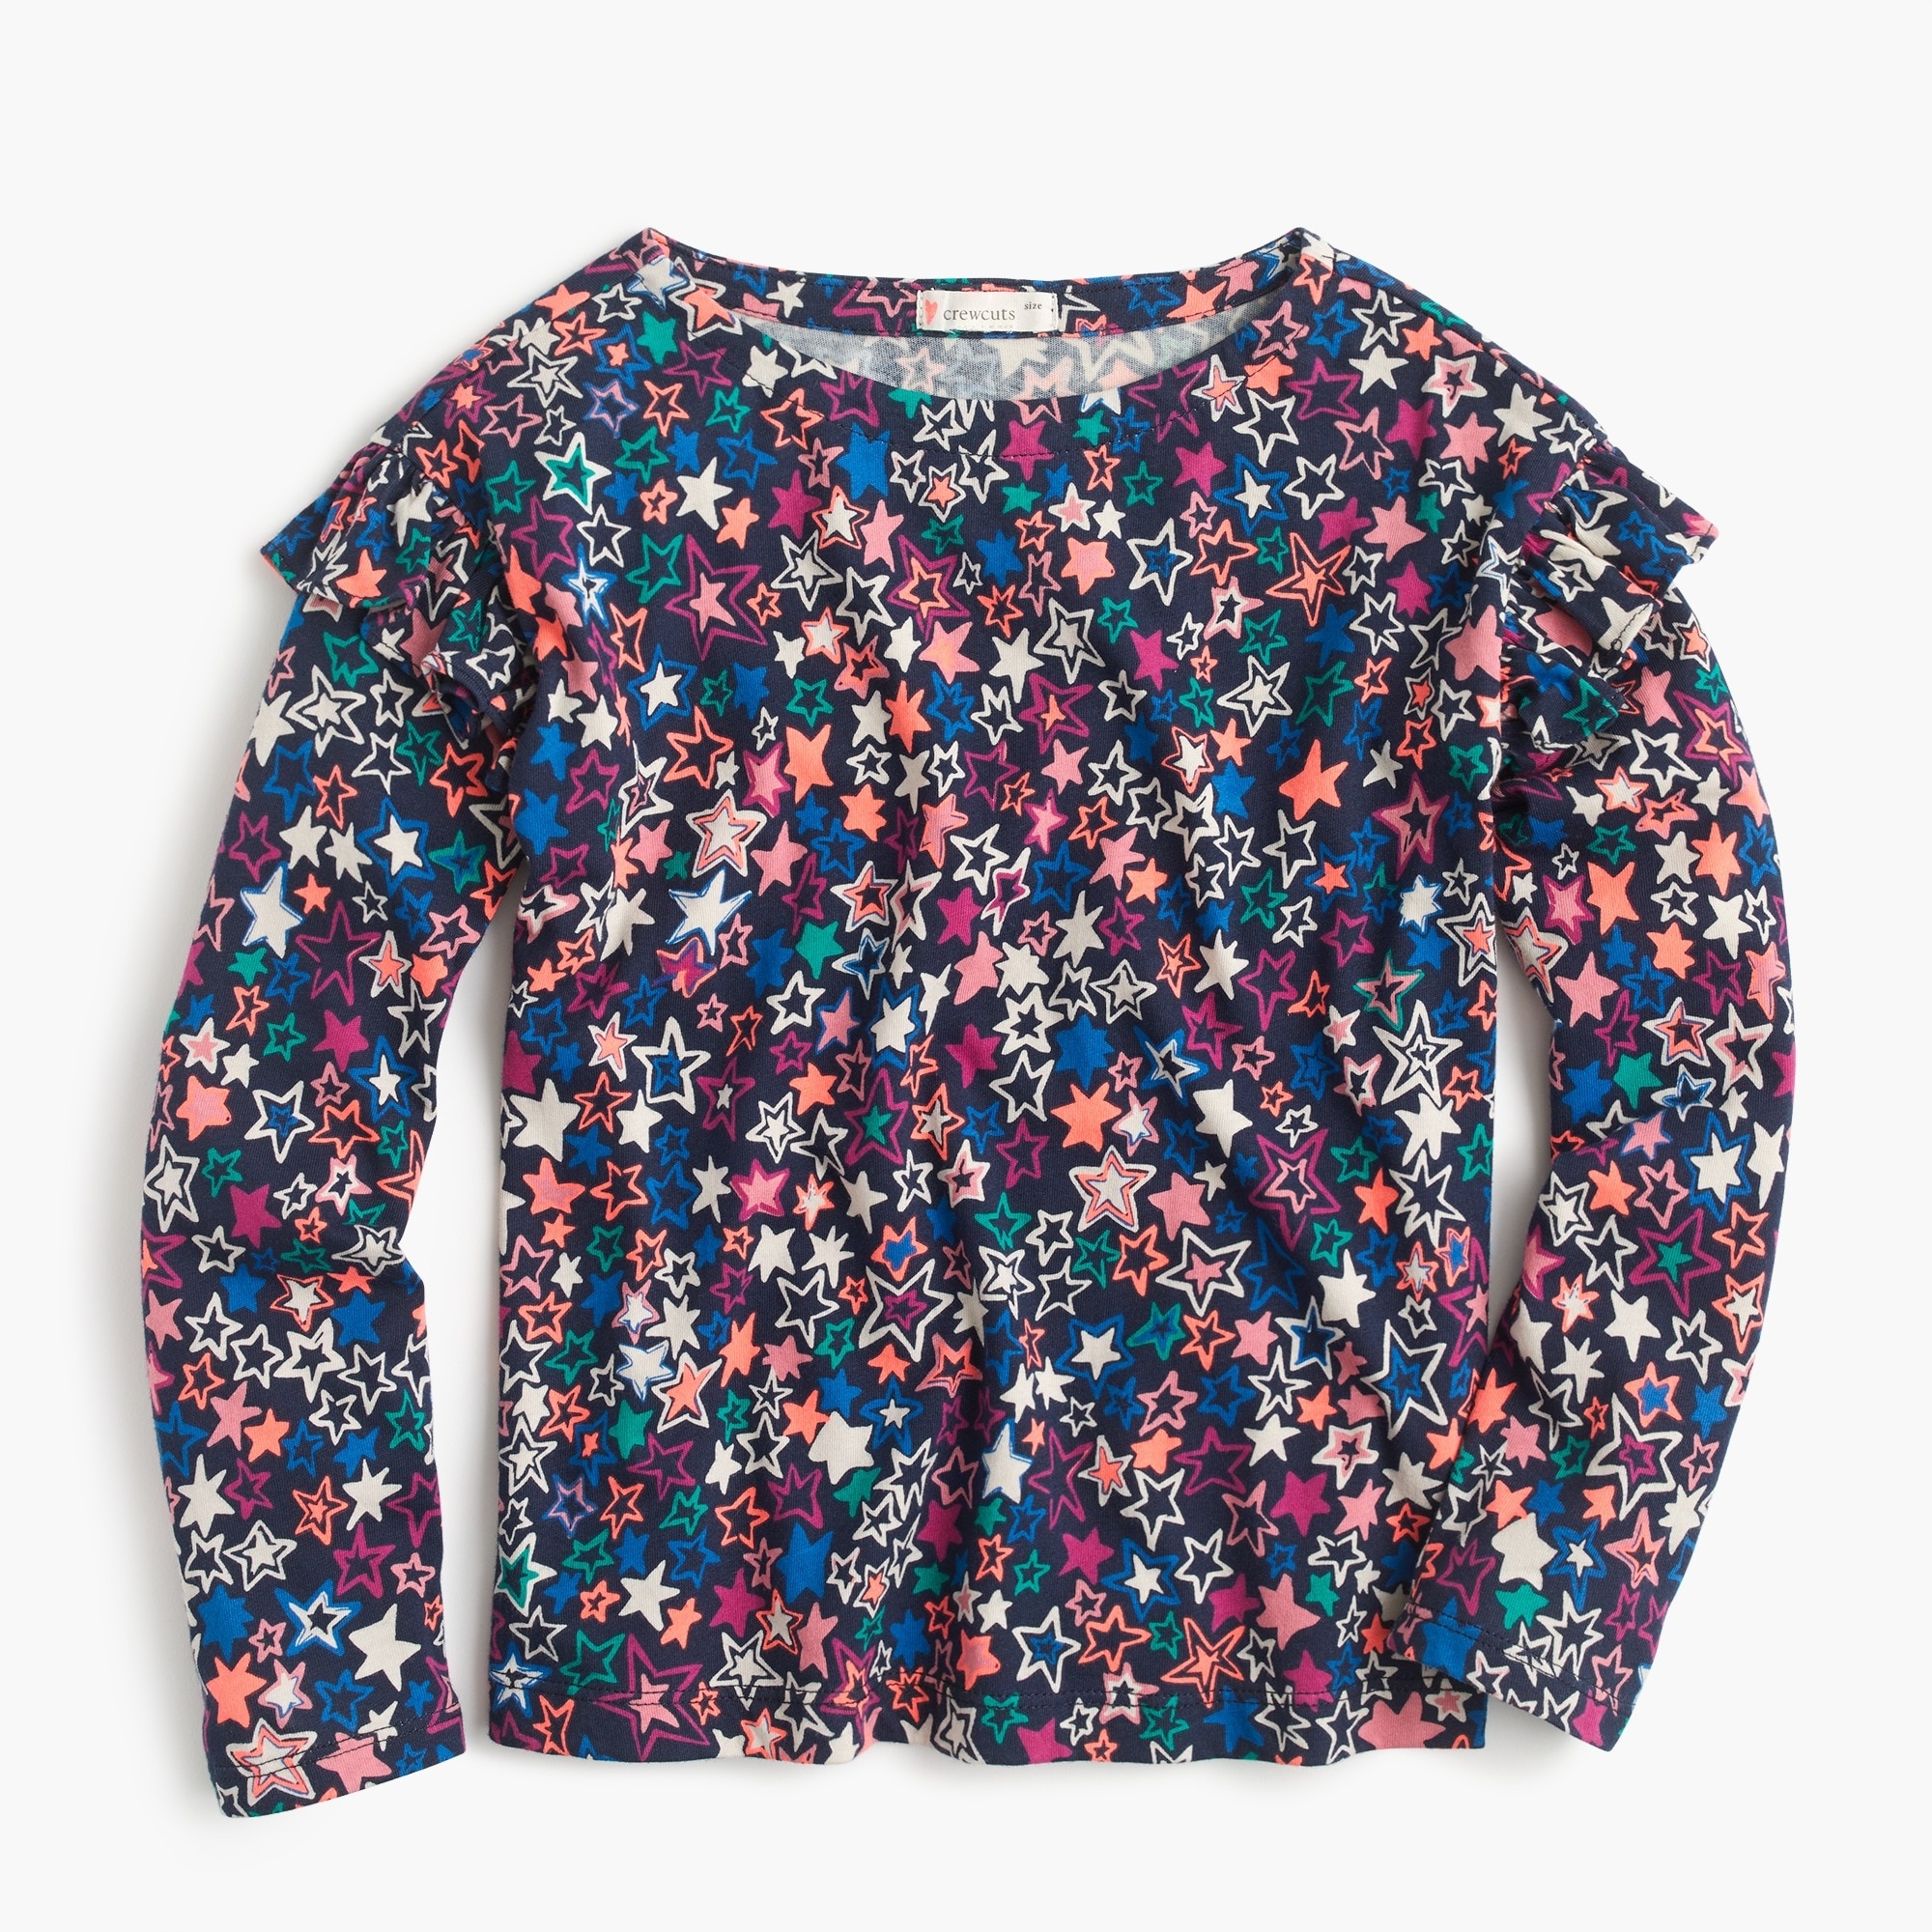 Girls' star-printed long-sleeve T-shirt with ruffles